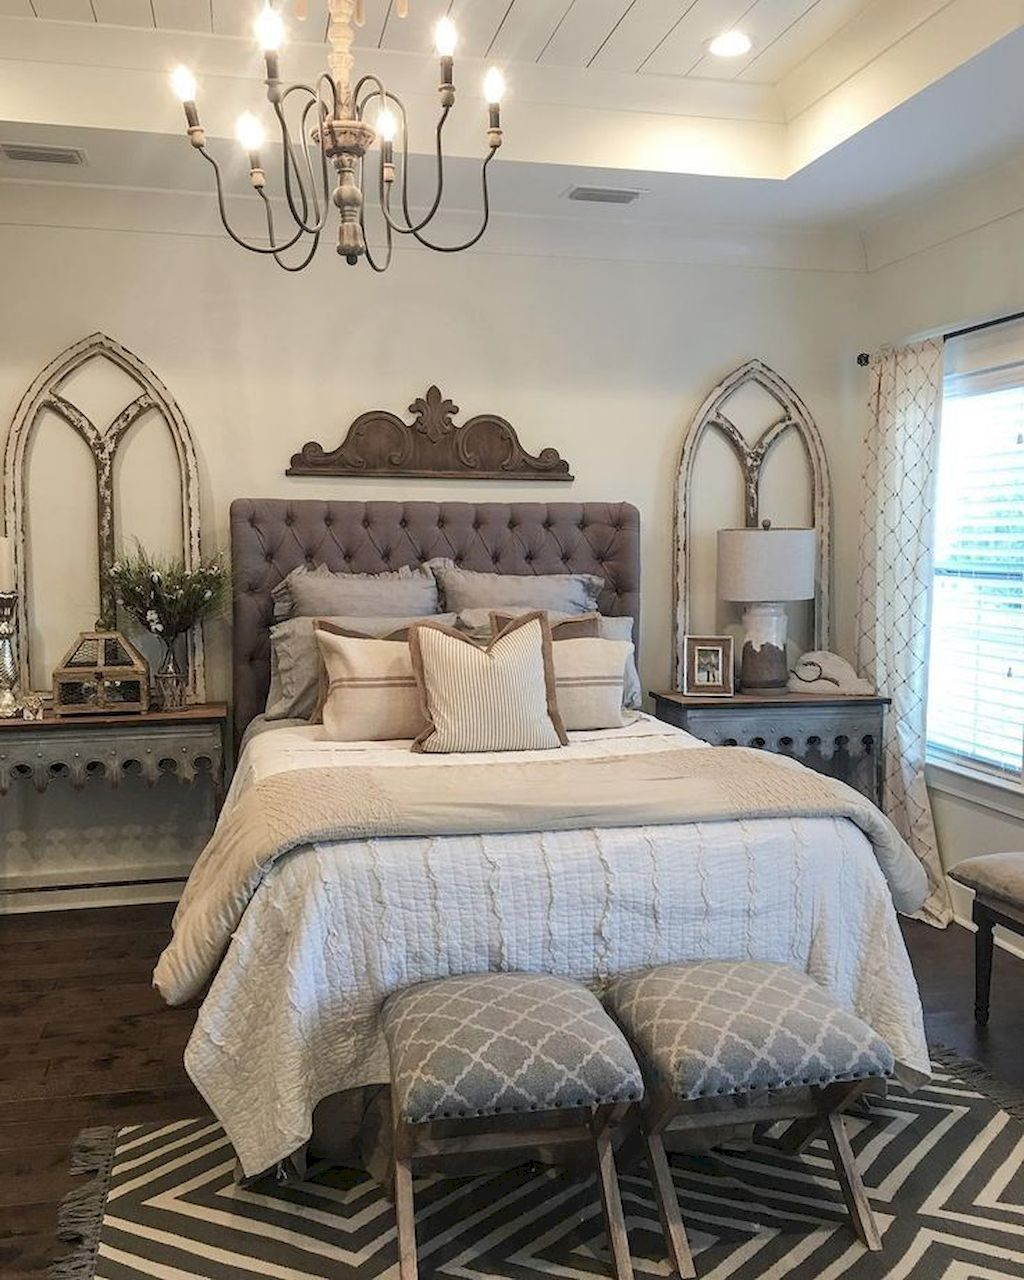 Vintage Farmhouse Bedroom Images Farmhouse Bedroom Decor Ideas Are Very Warmly Country